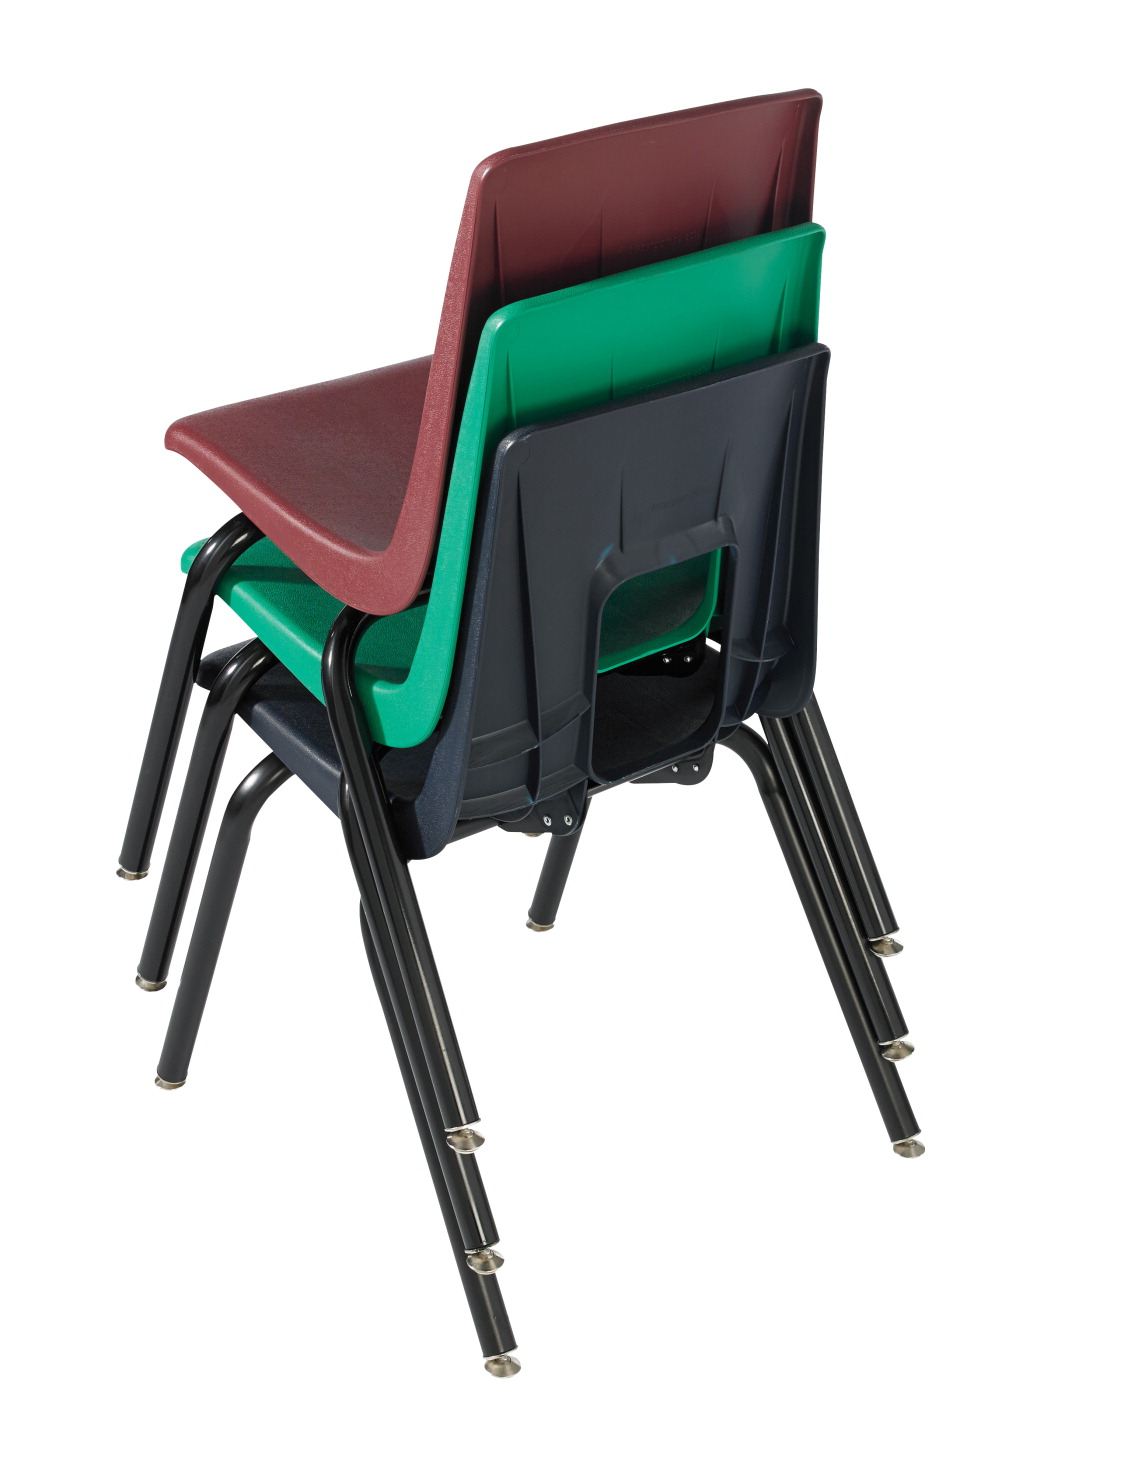 Enjoyable Classroom Select Traditional Chair 15 1 2 Inch Seat Height Black Frame Various Options Bralicious Painted Fabric Chair Ideas Braliciousco